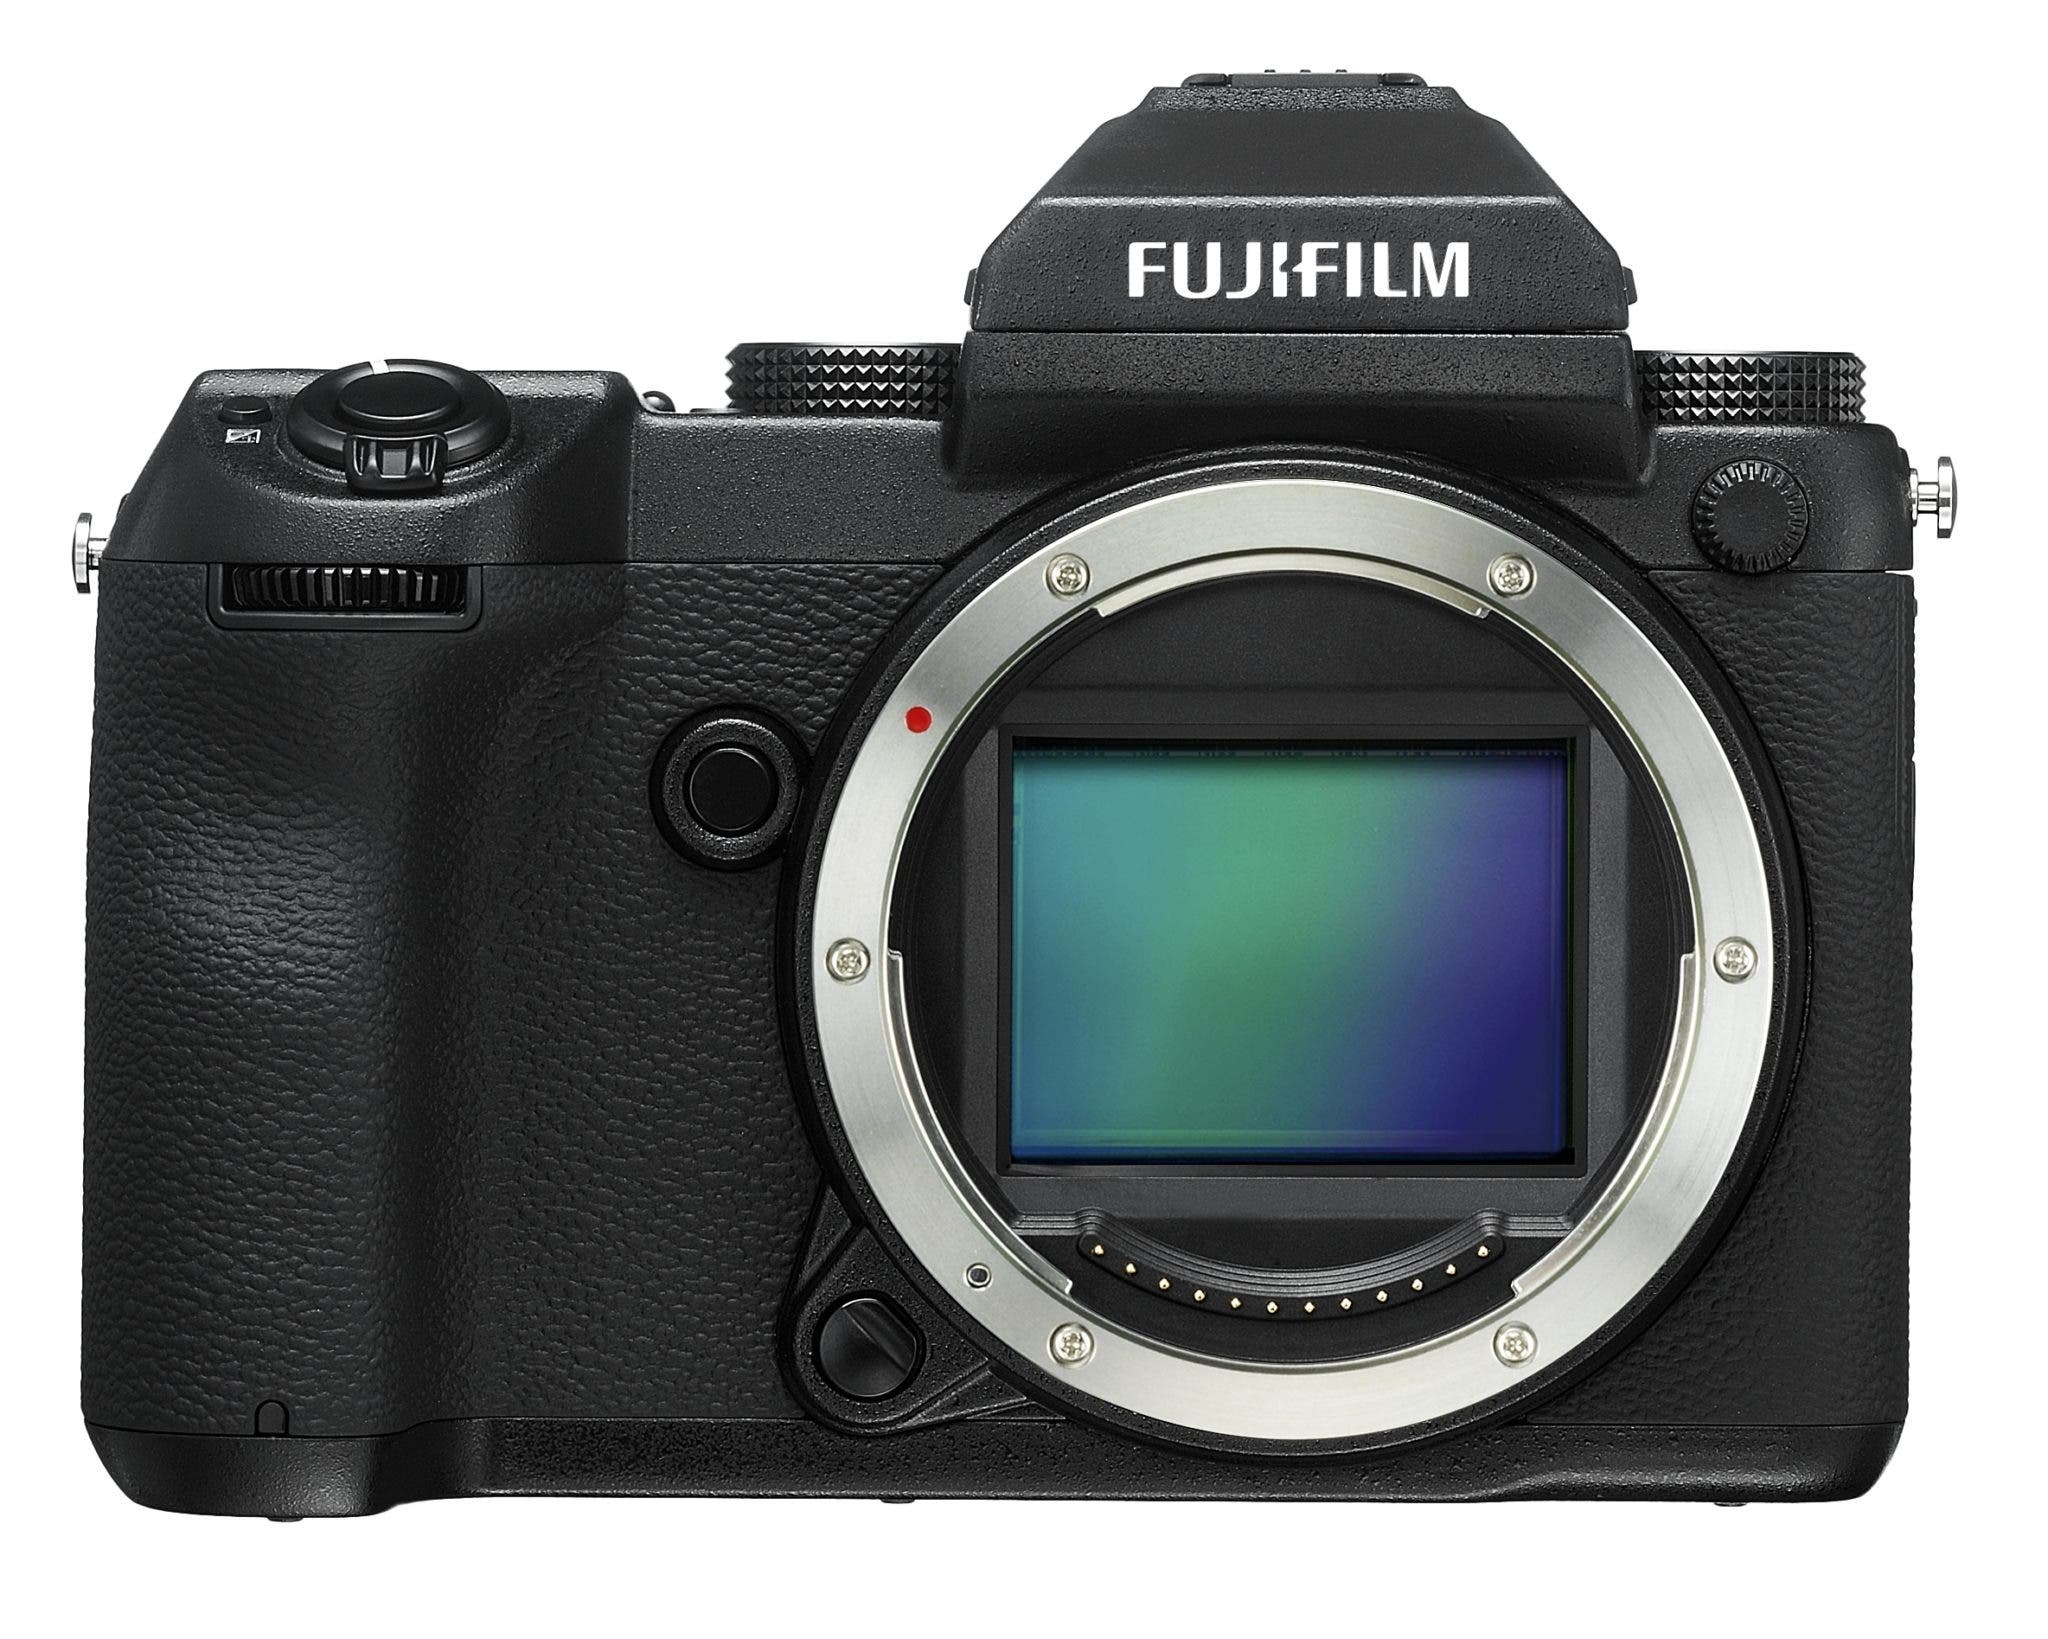 The Fujifilm GFX 50s System Will Cost $6,499 Body Only